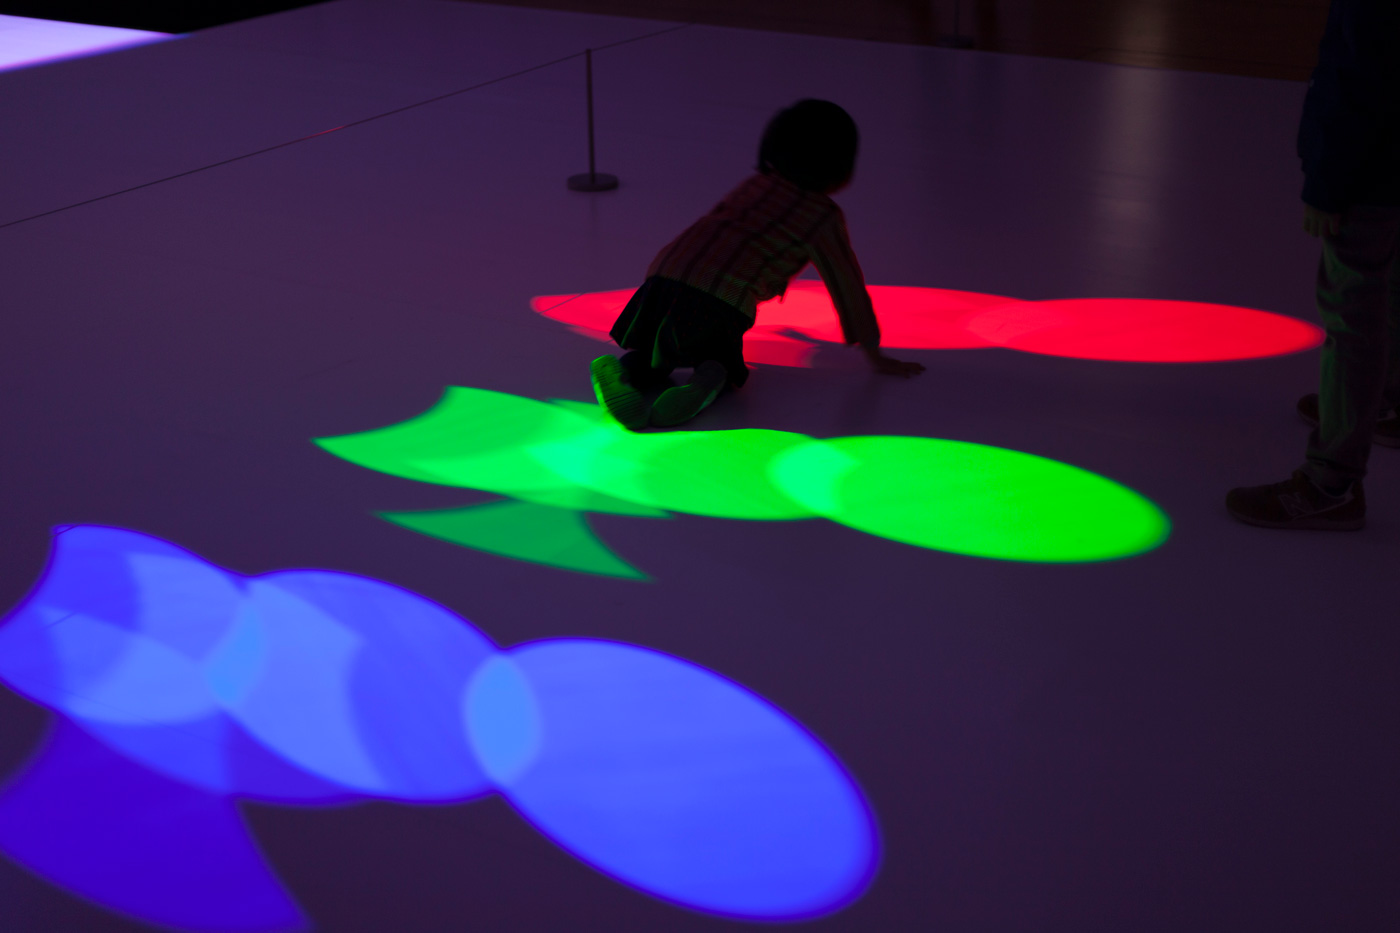 RGB|CMYK Kinetic by Rhizomatiks Reasearch @ ICC